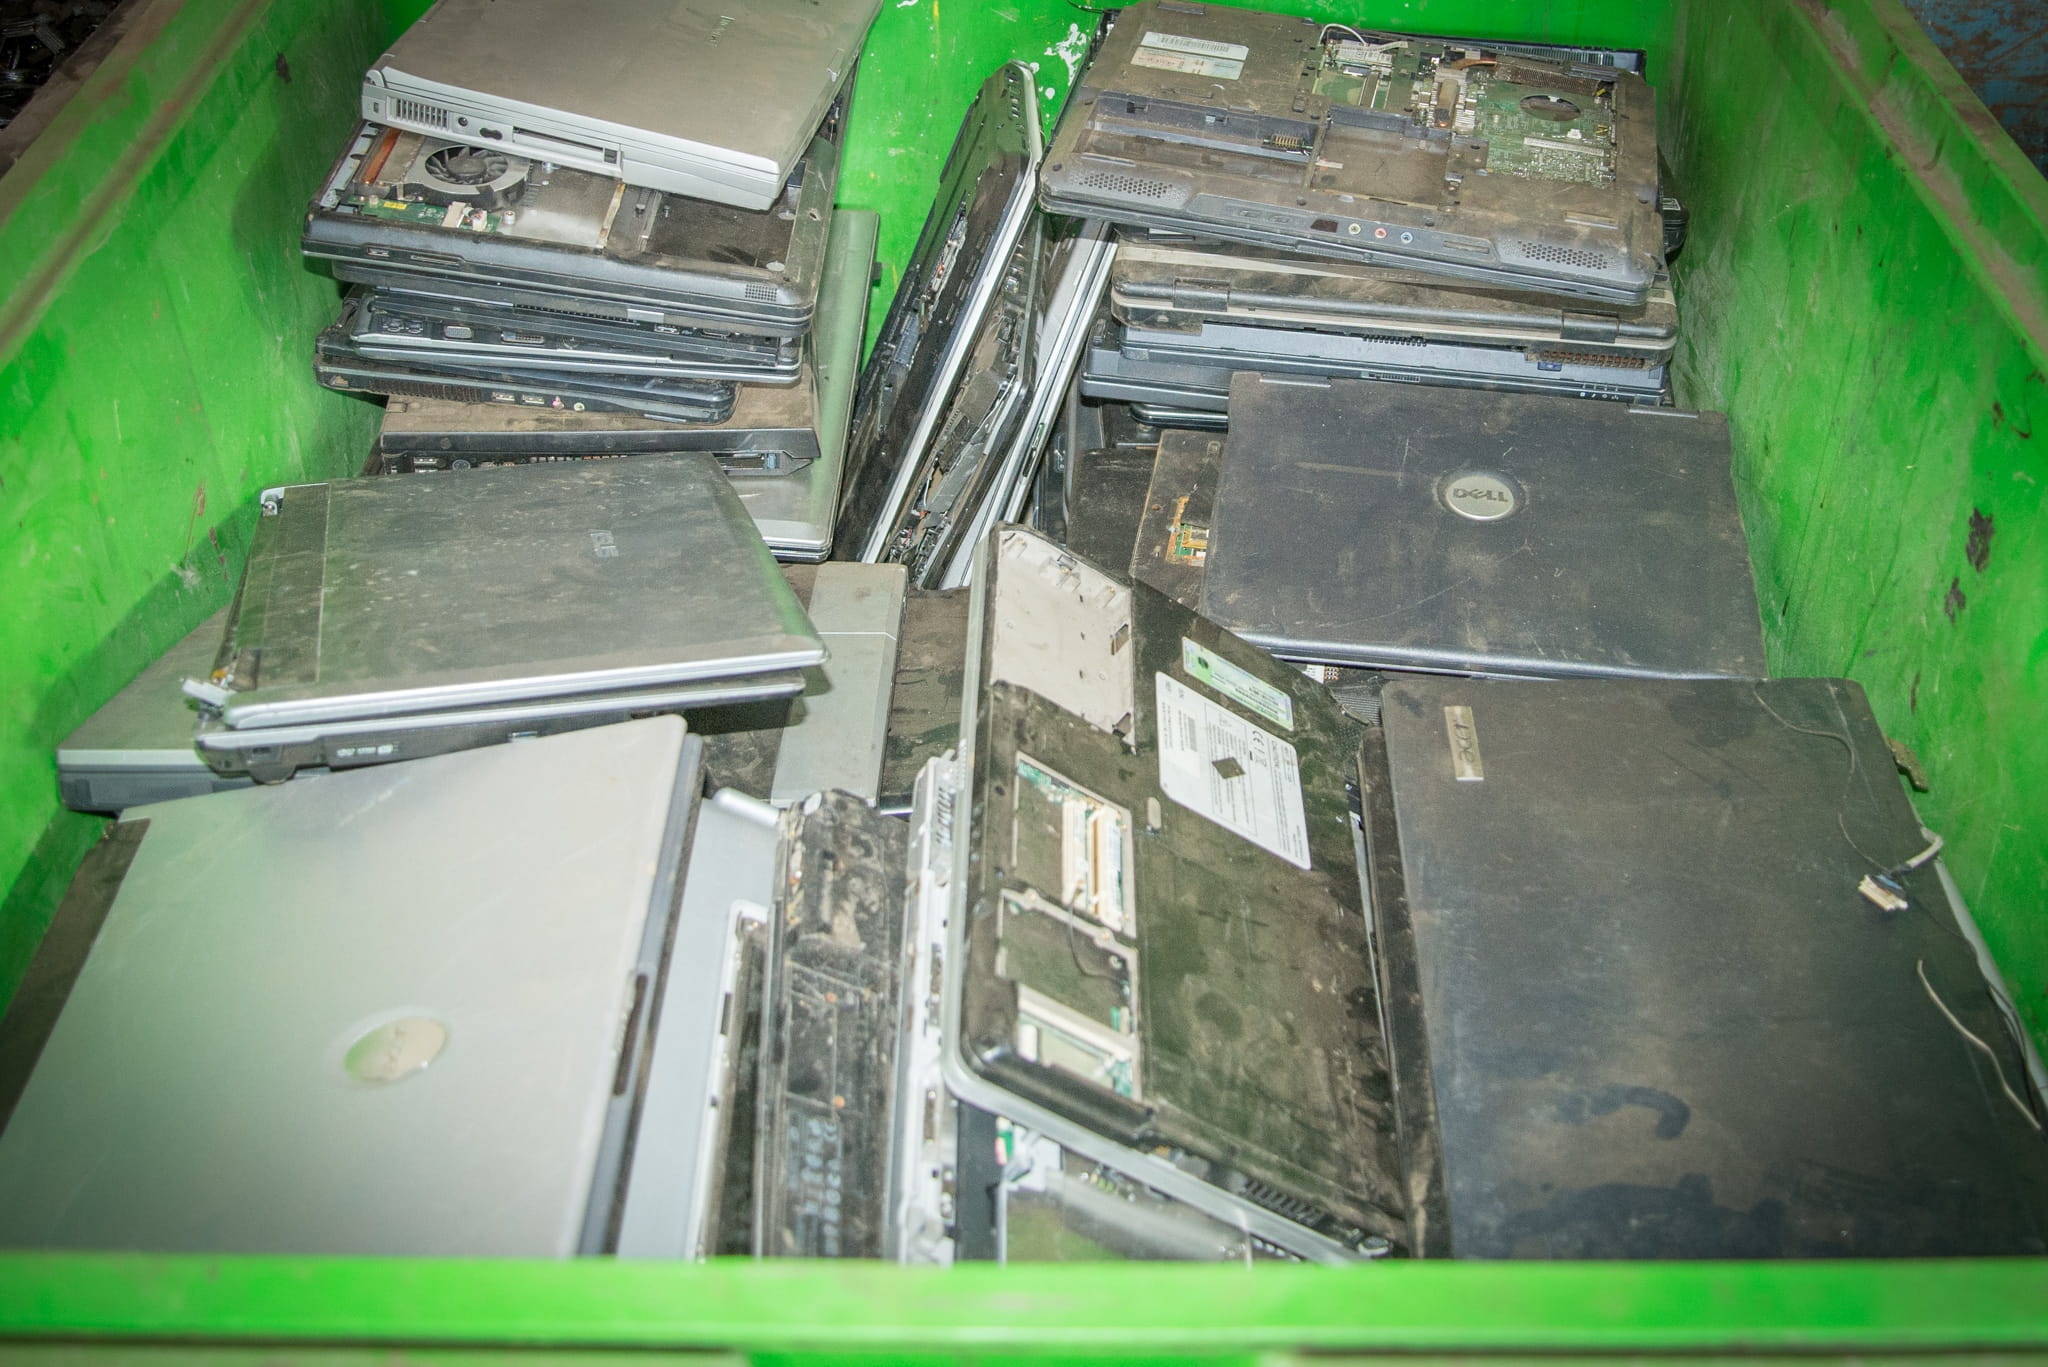 E-waste laptops